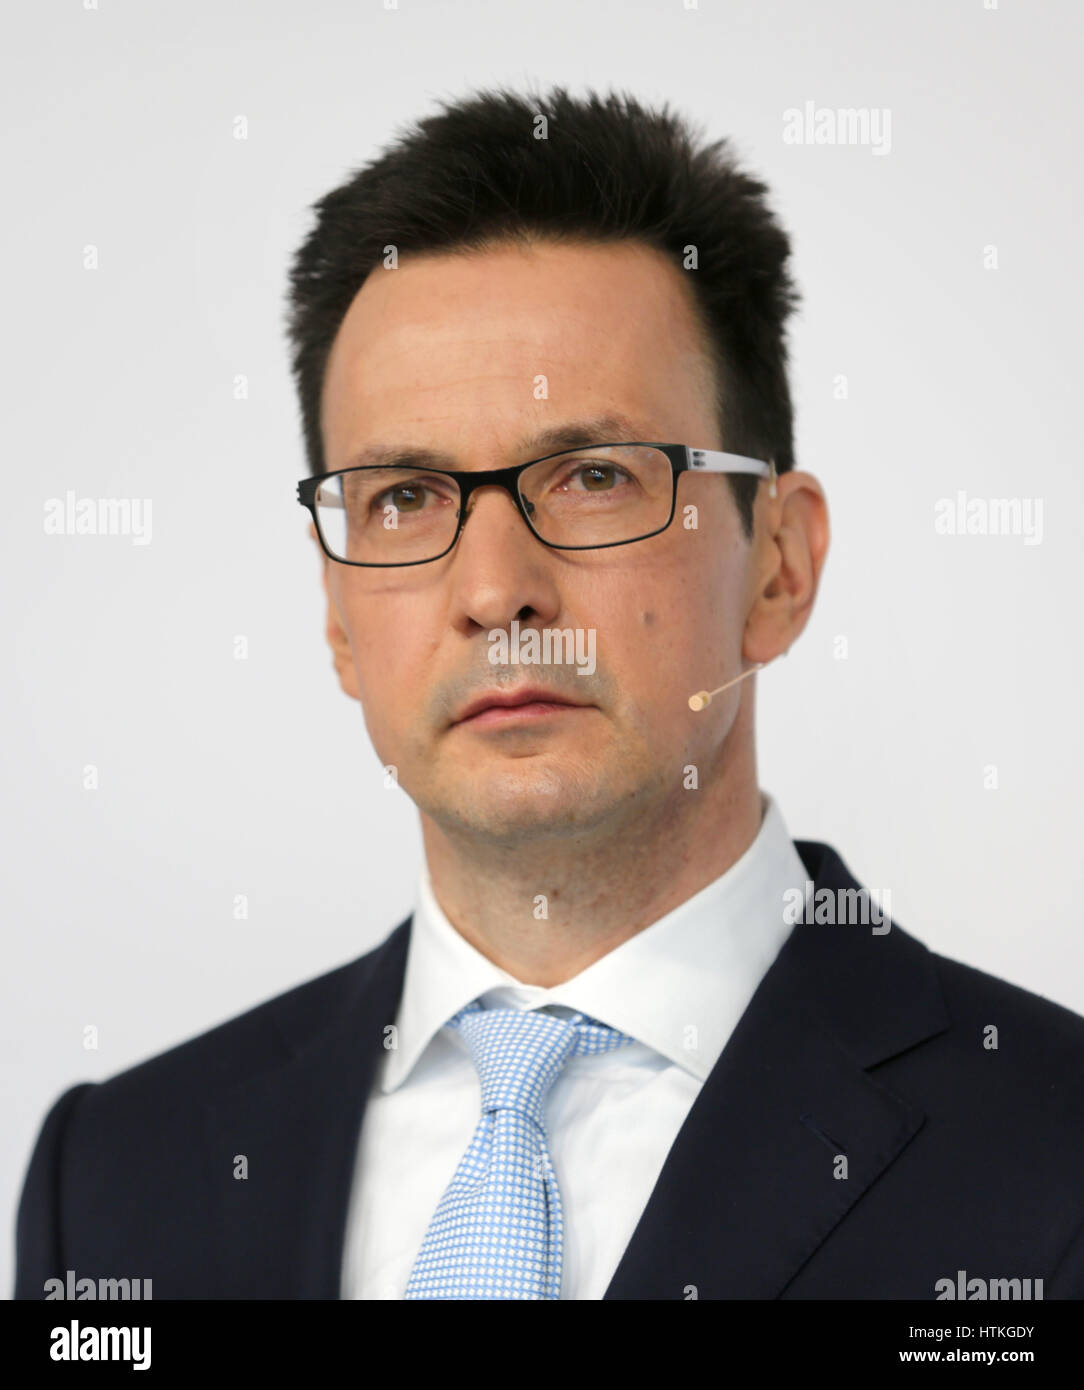 Essen, Germany. 13th Mar, 2017. Chairman of finance (CFO) for the eco-energy group Innogy, Berhnhard Gunther, at - Stock Image